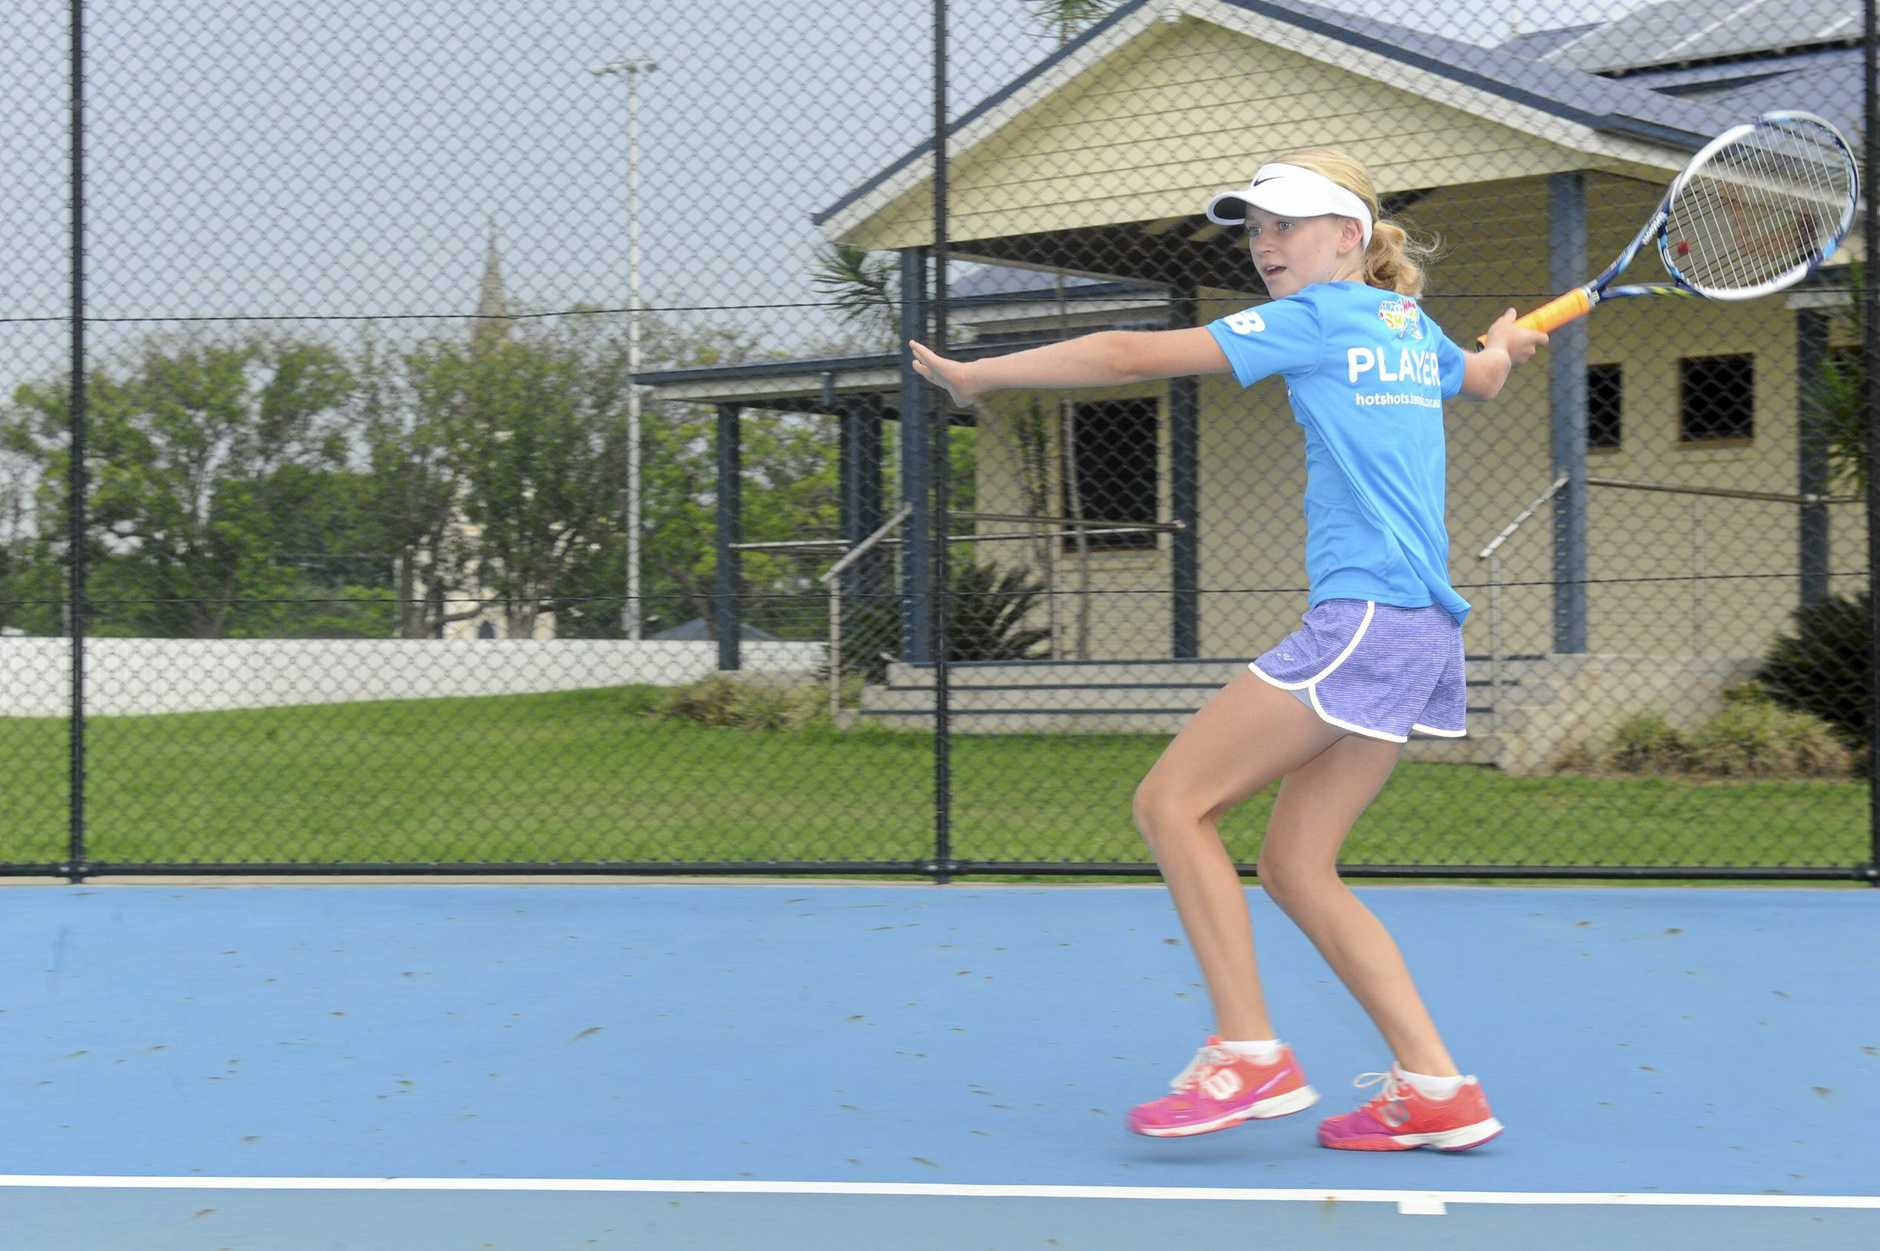 Grafton City Tennis Club HotShots player Rahni McGrath will head to the Australian Open as the December HotShot of the Month.